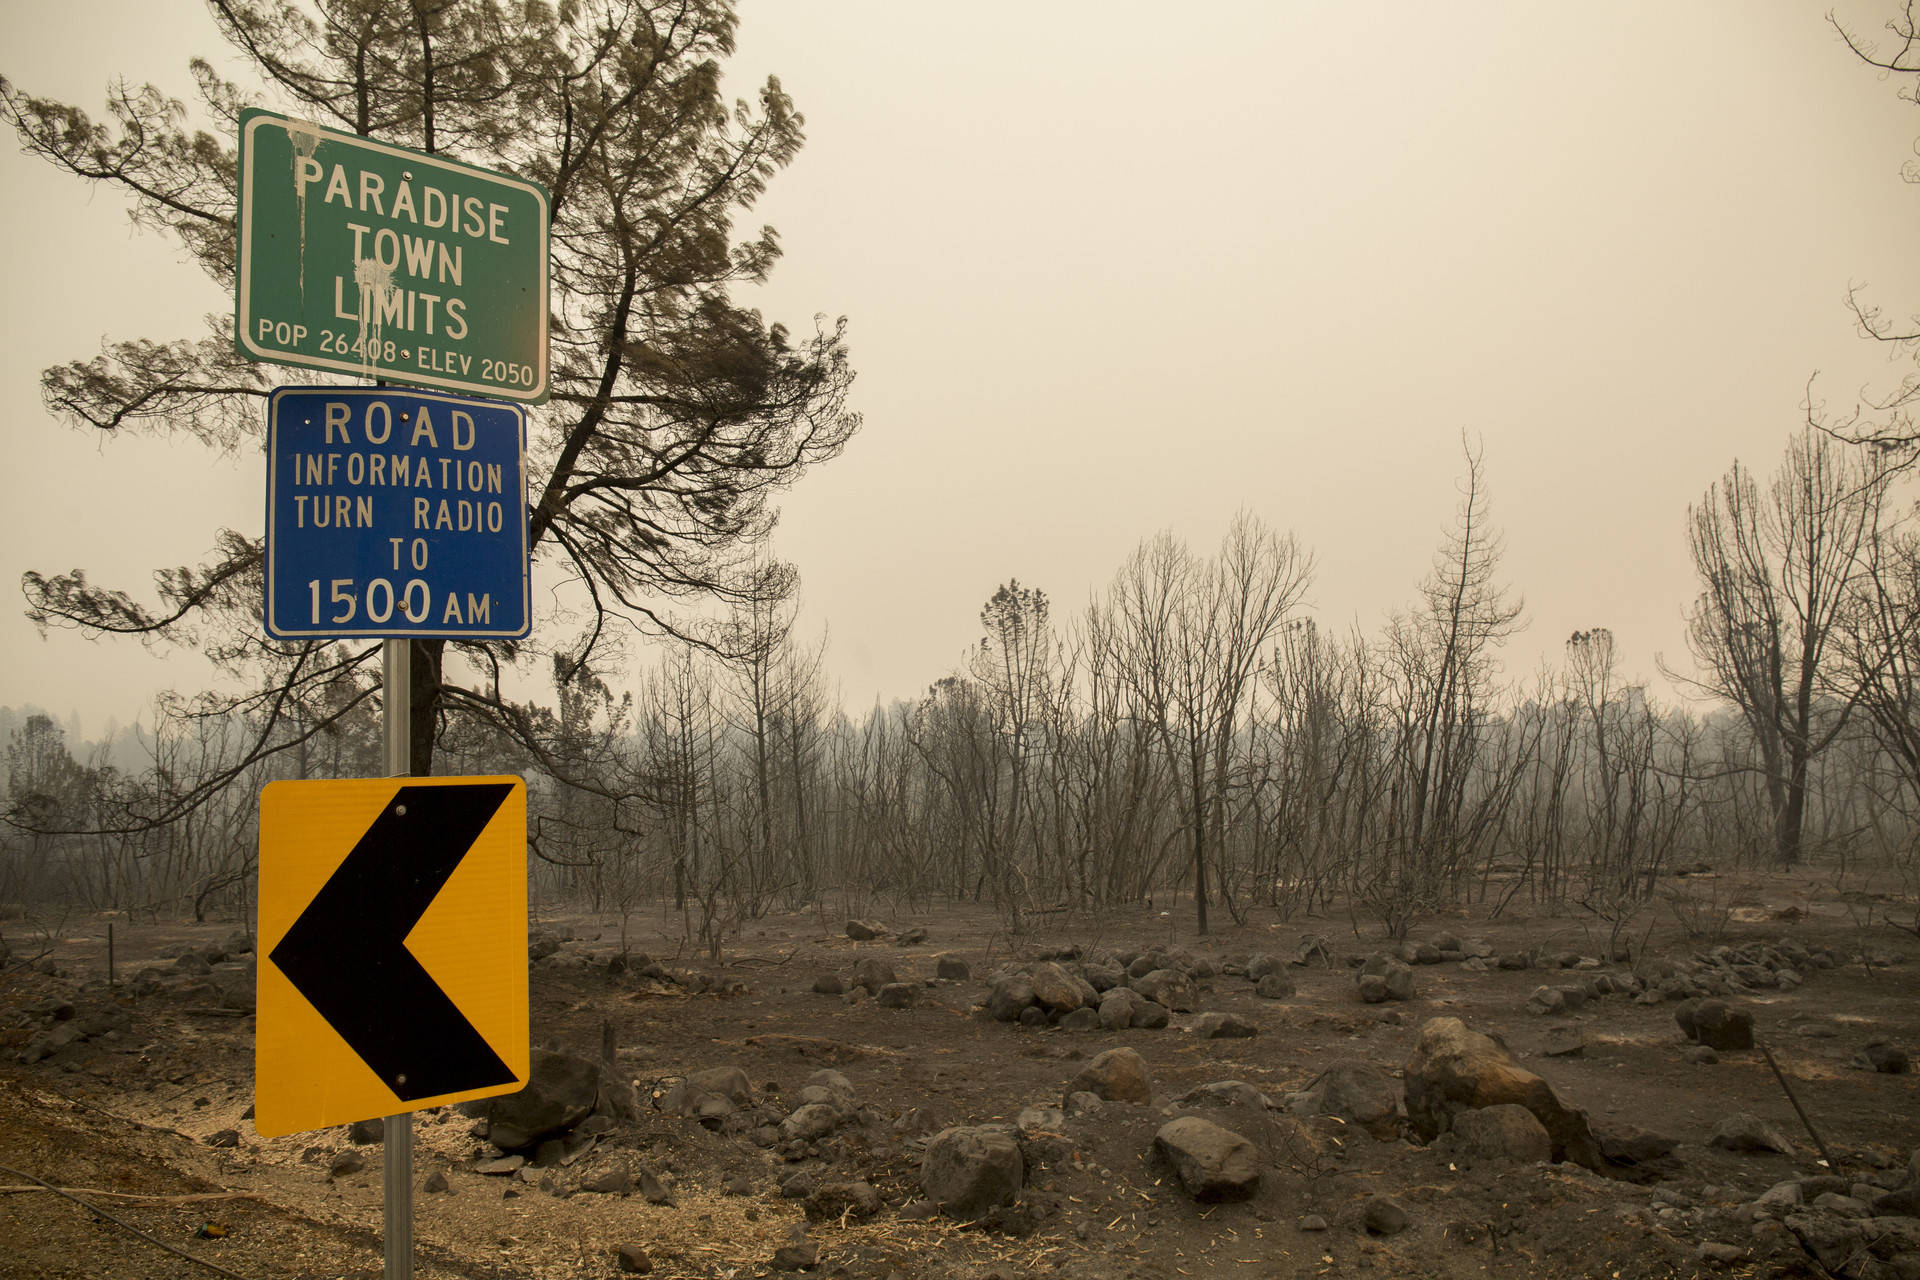 The Paradise city limit stands in front of burned-out landscape on Nov. 13, 2018. High rains expected to hit that charred ground could lead to flooding and mudslides in the burn area. Anne Wernikoff/KQED